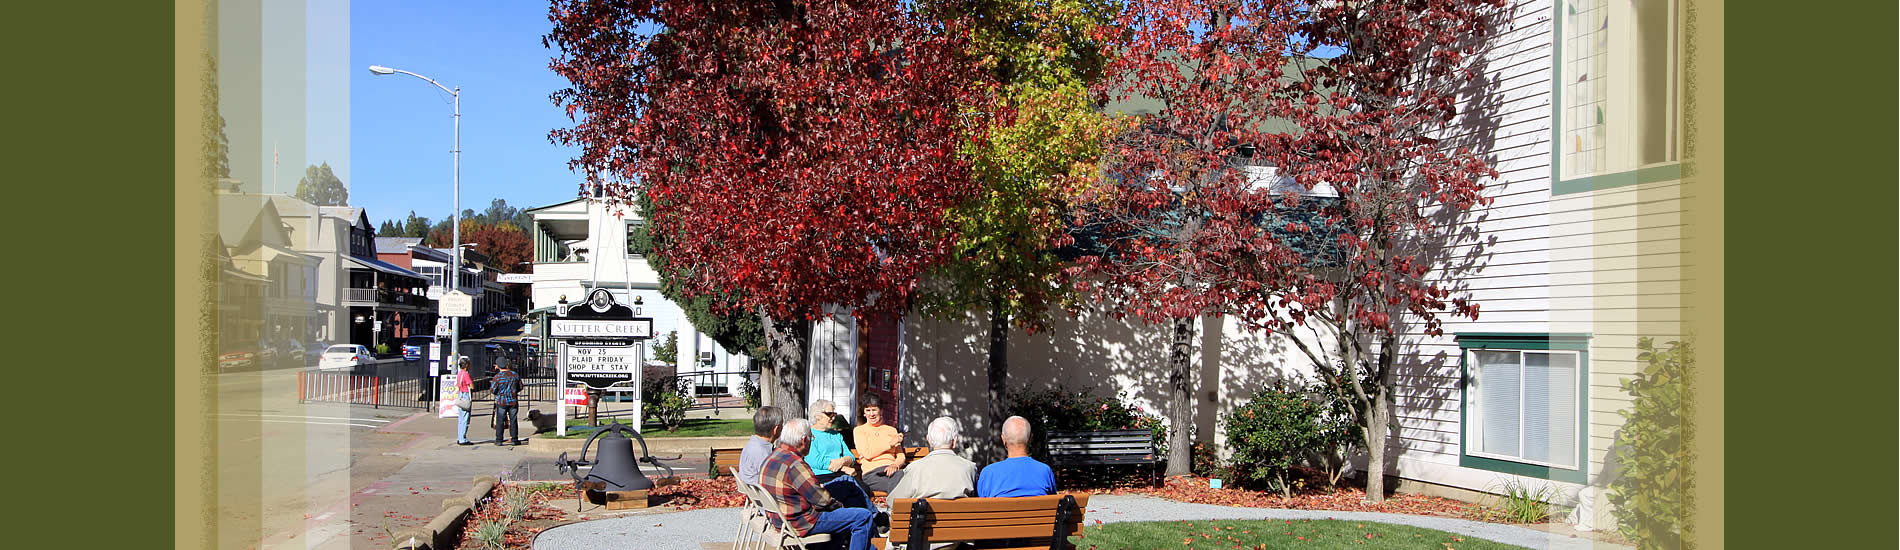 sutter creek city administration- fall colors and citizens